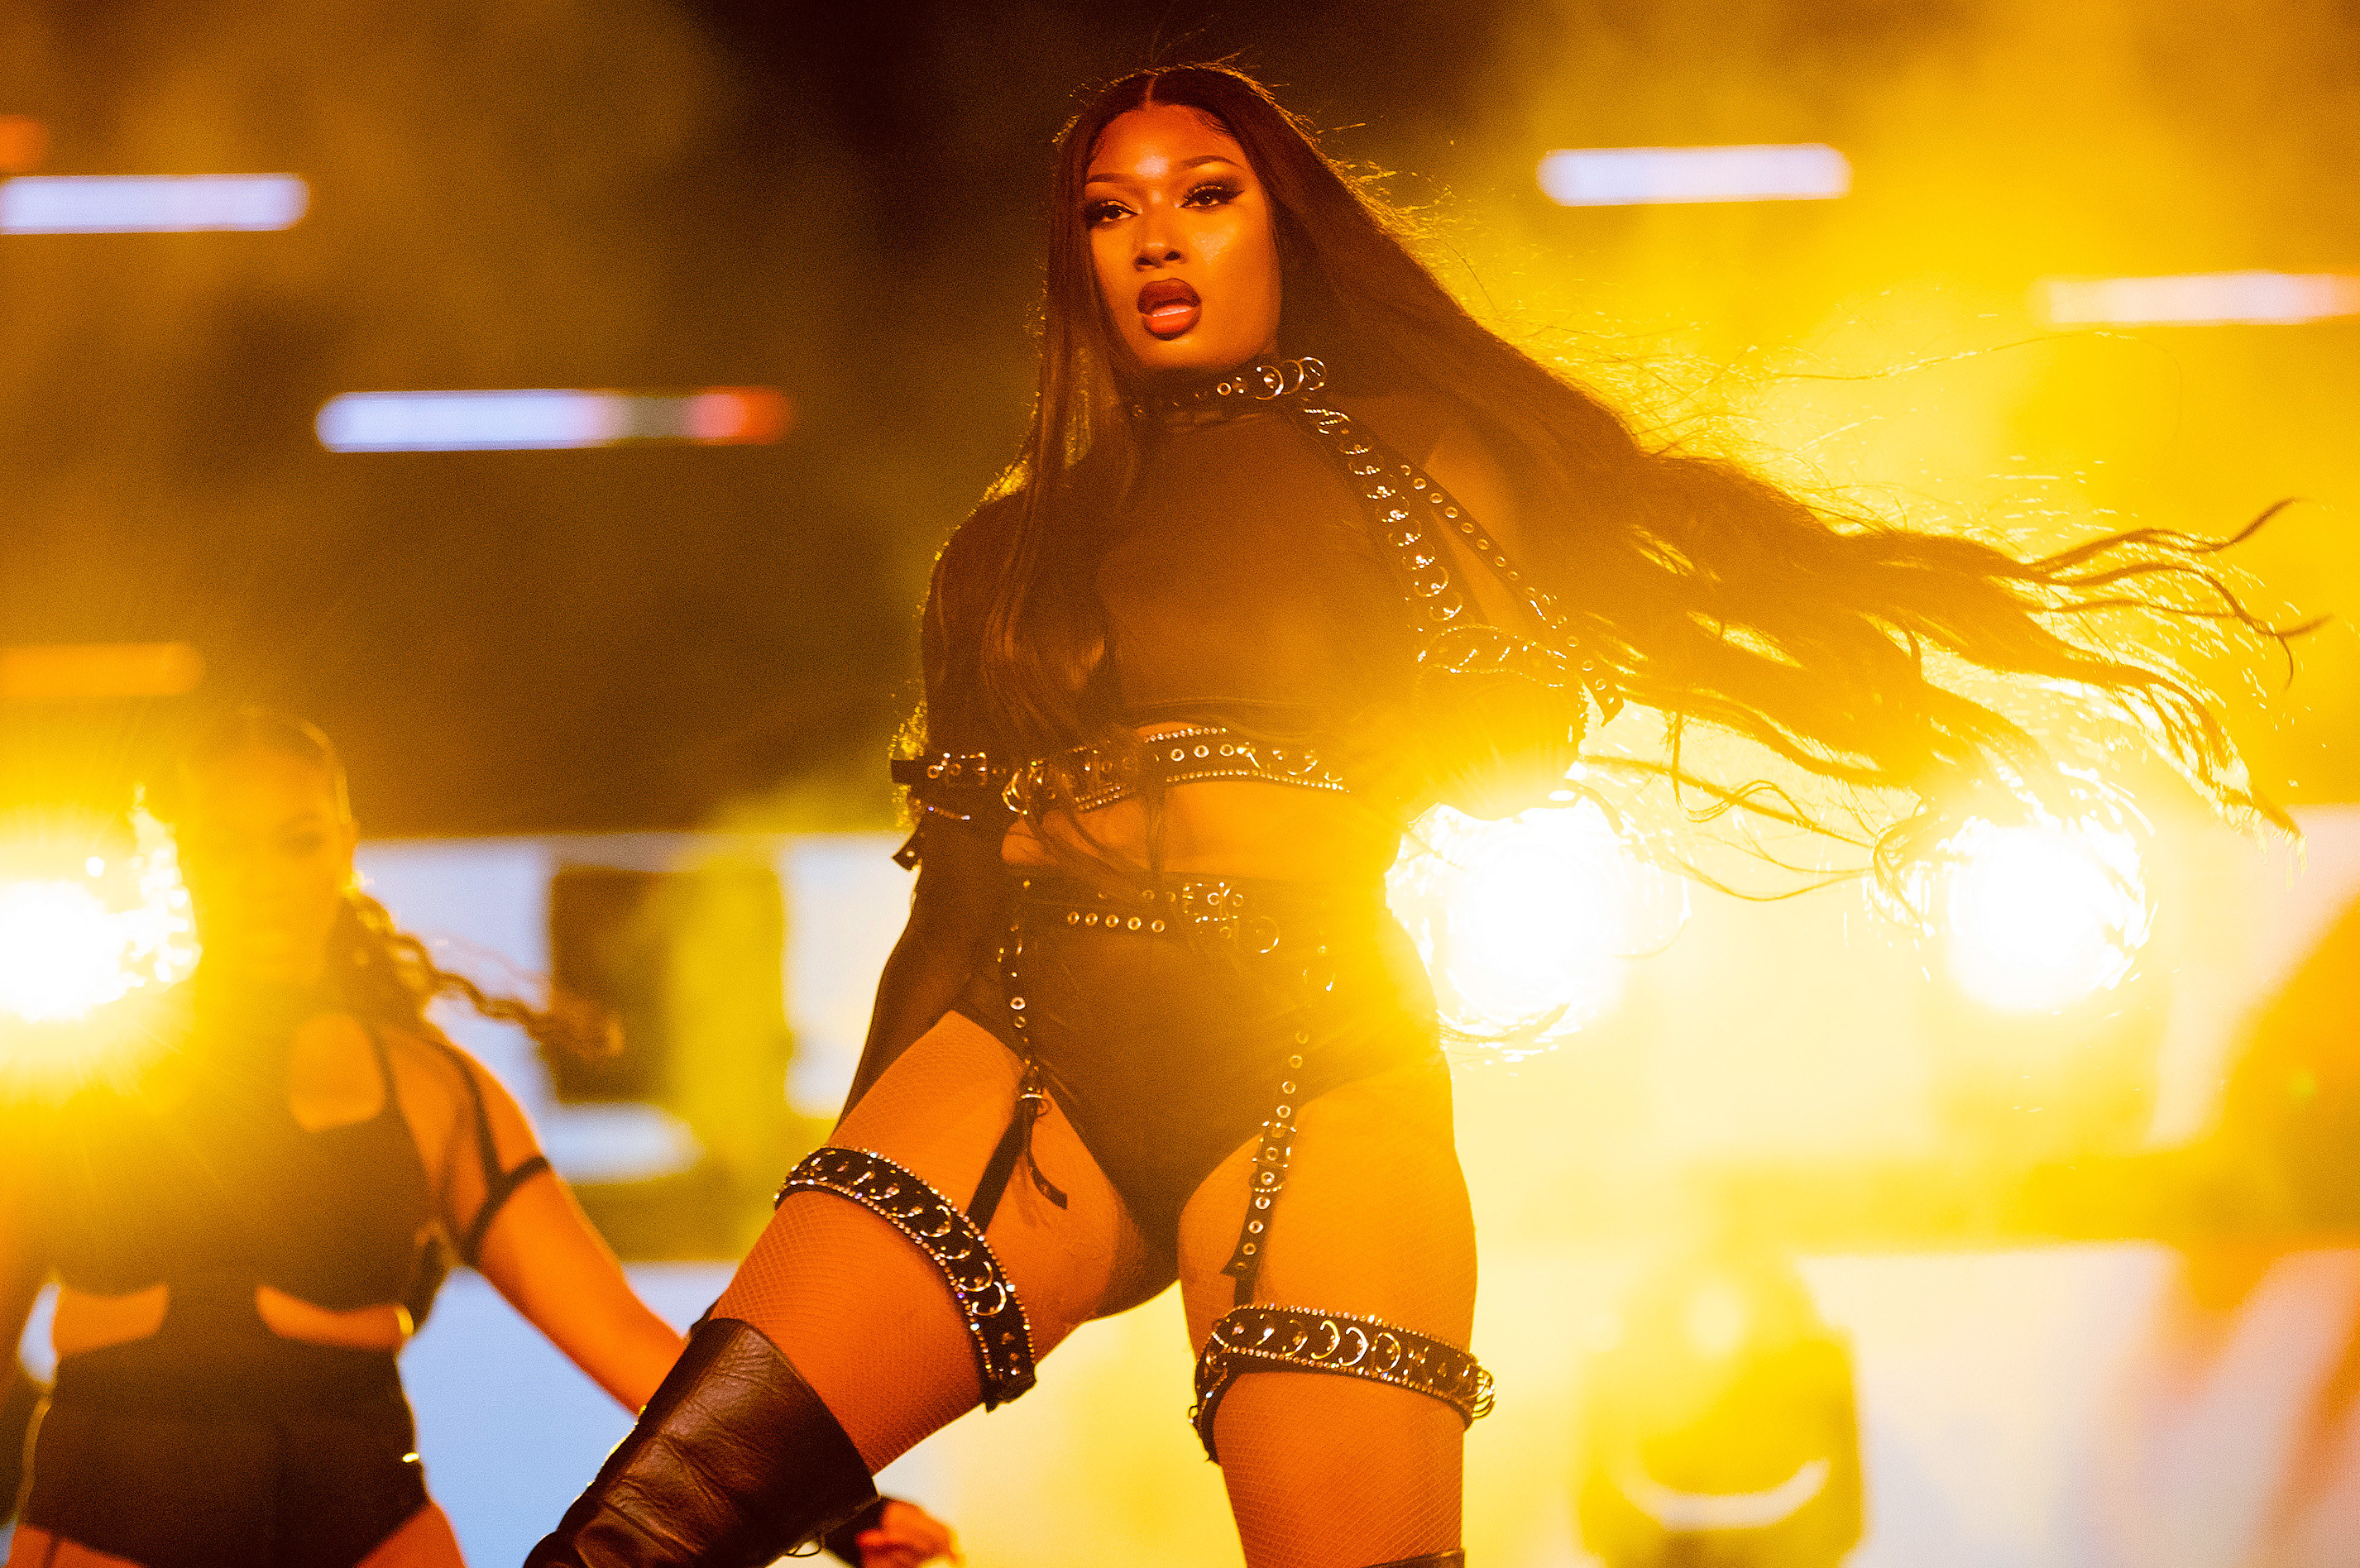 Megan Thee Stallion performing on stage in a black harness outfit and with lights behind her